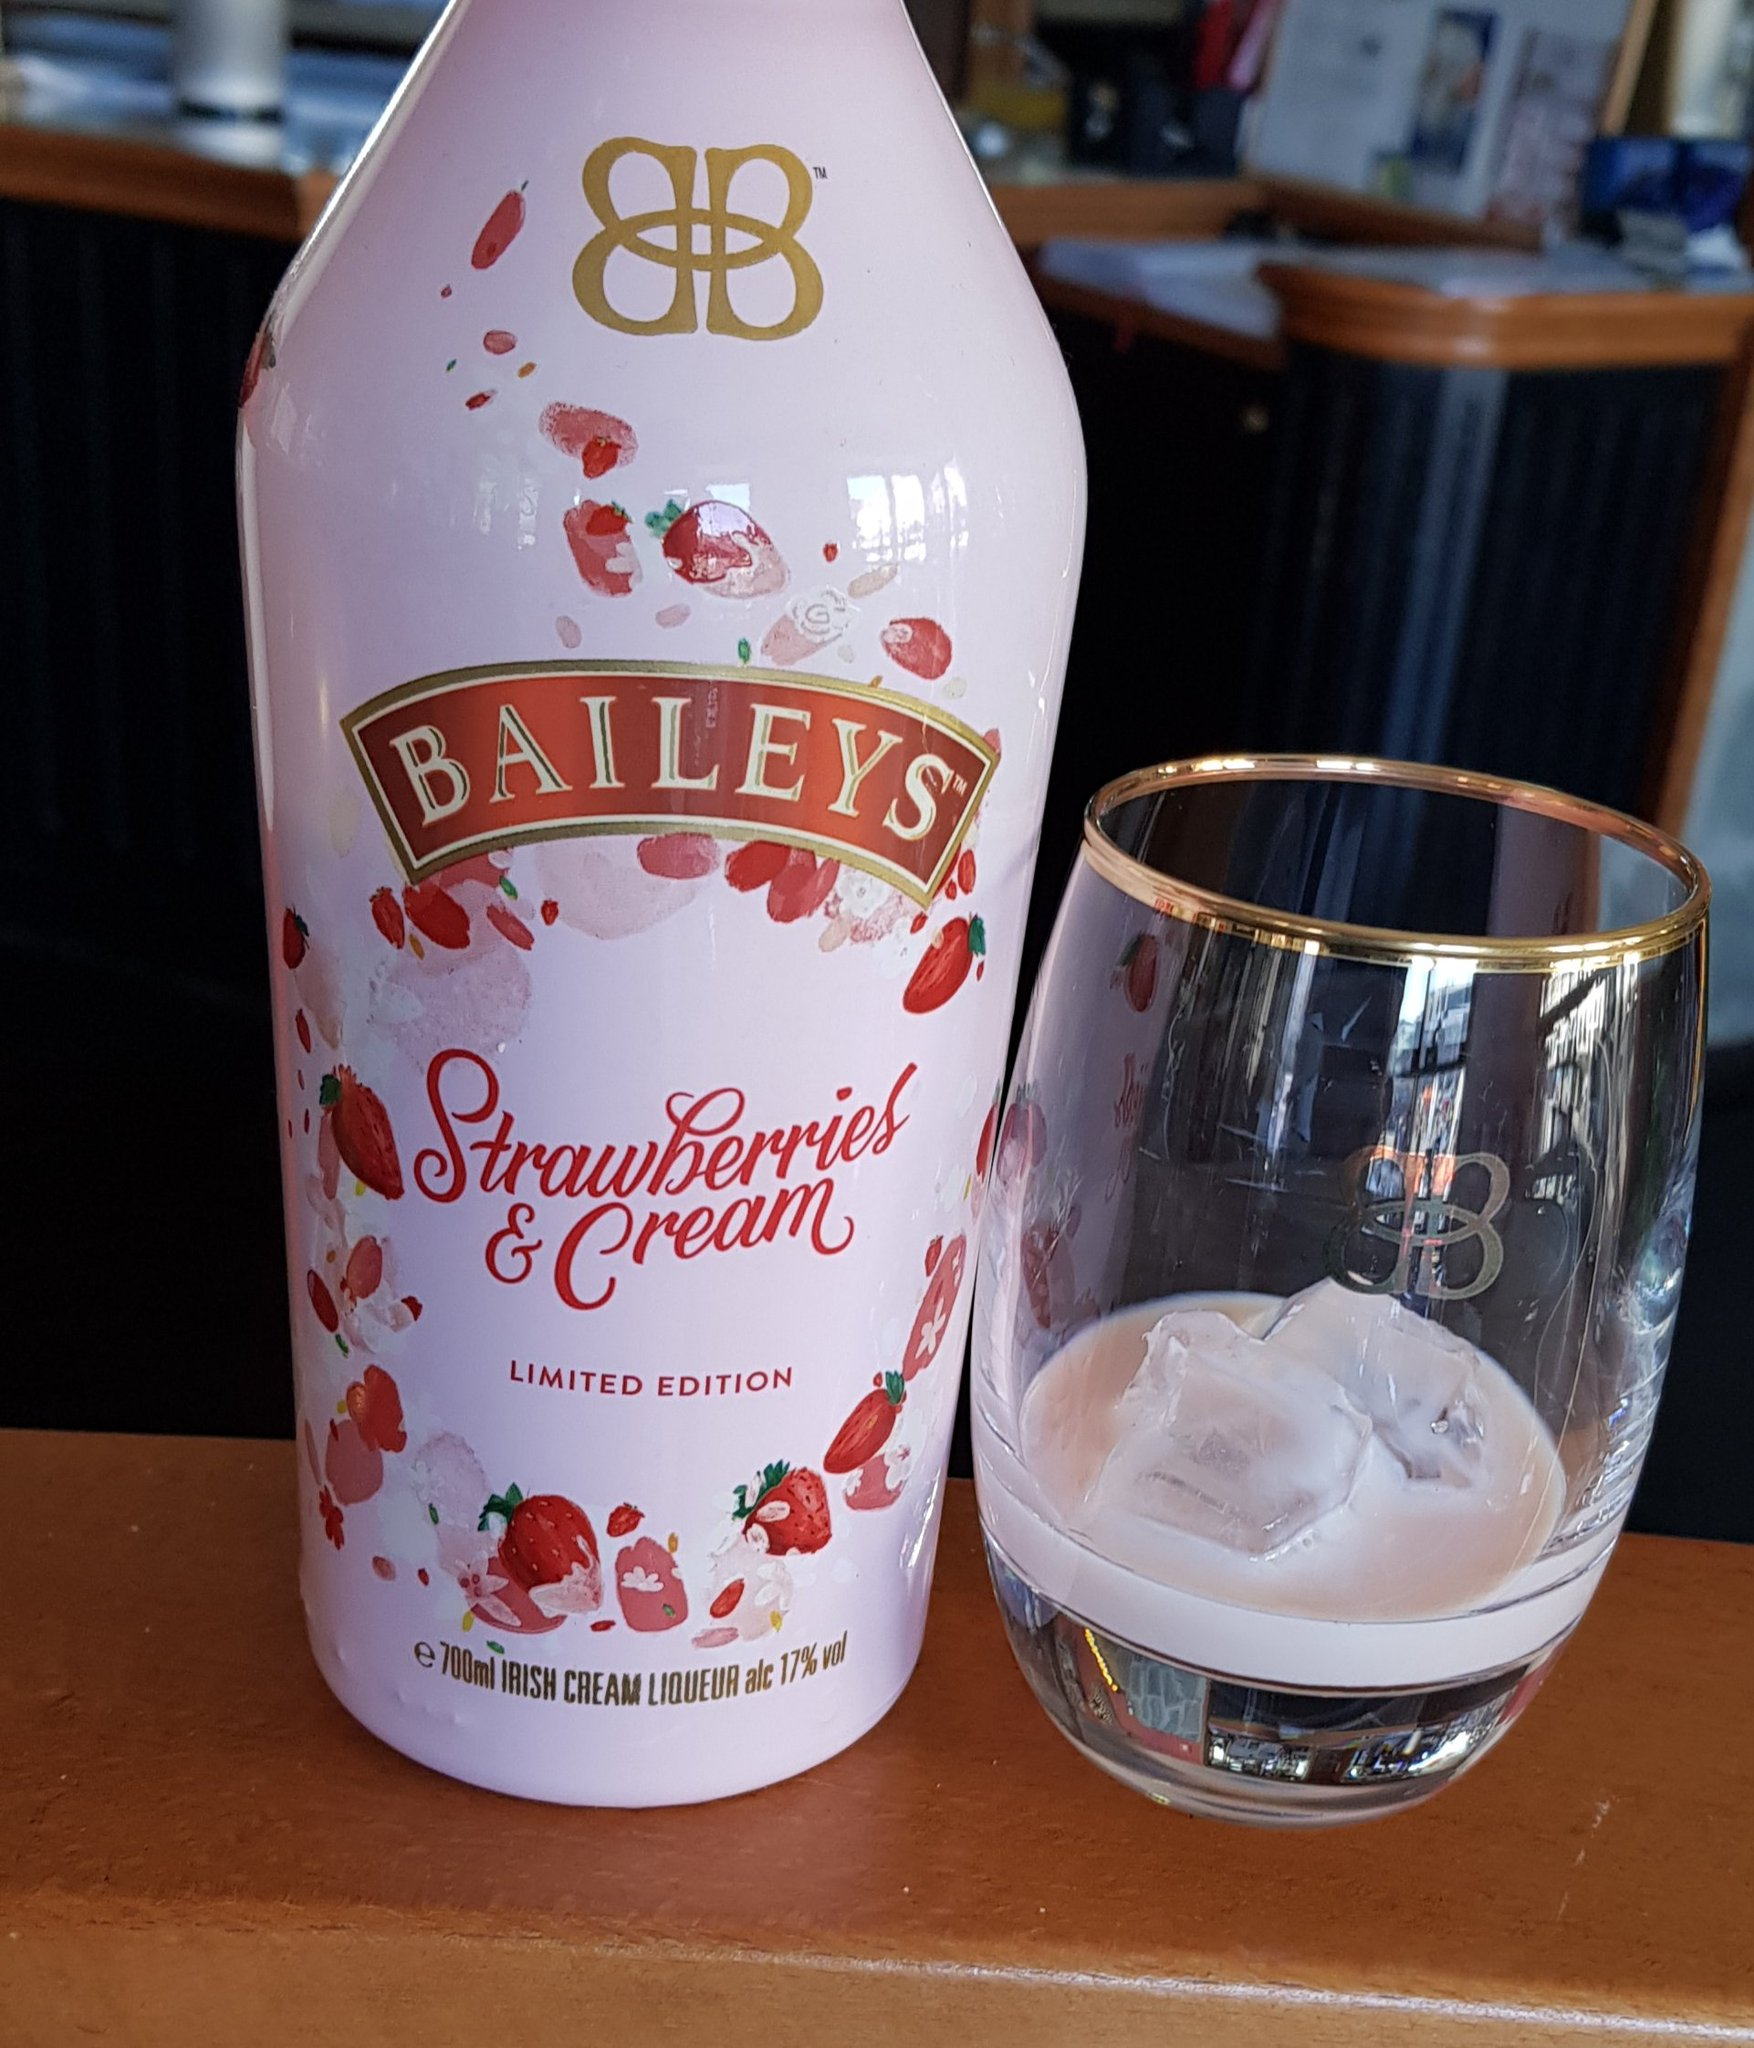 On the rocks or in a cocktail. Highly recommended #cocktail #mixology #baileys #Strawberry @MacCocktail @totc @thecocktailguru @BaileysOfficial @Baileys_GB @cocktailsnfit @drinkrecipes4u @TedNguyen @OzBartenderMag https://t.co/eho1KP9TFA